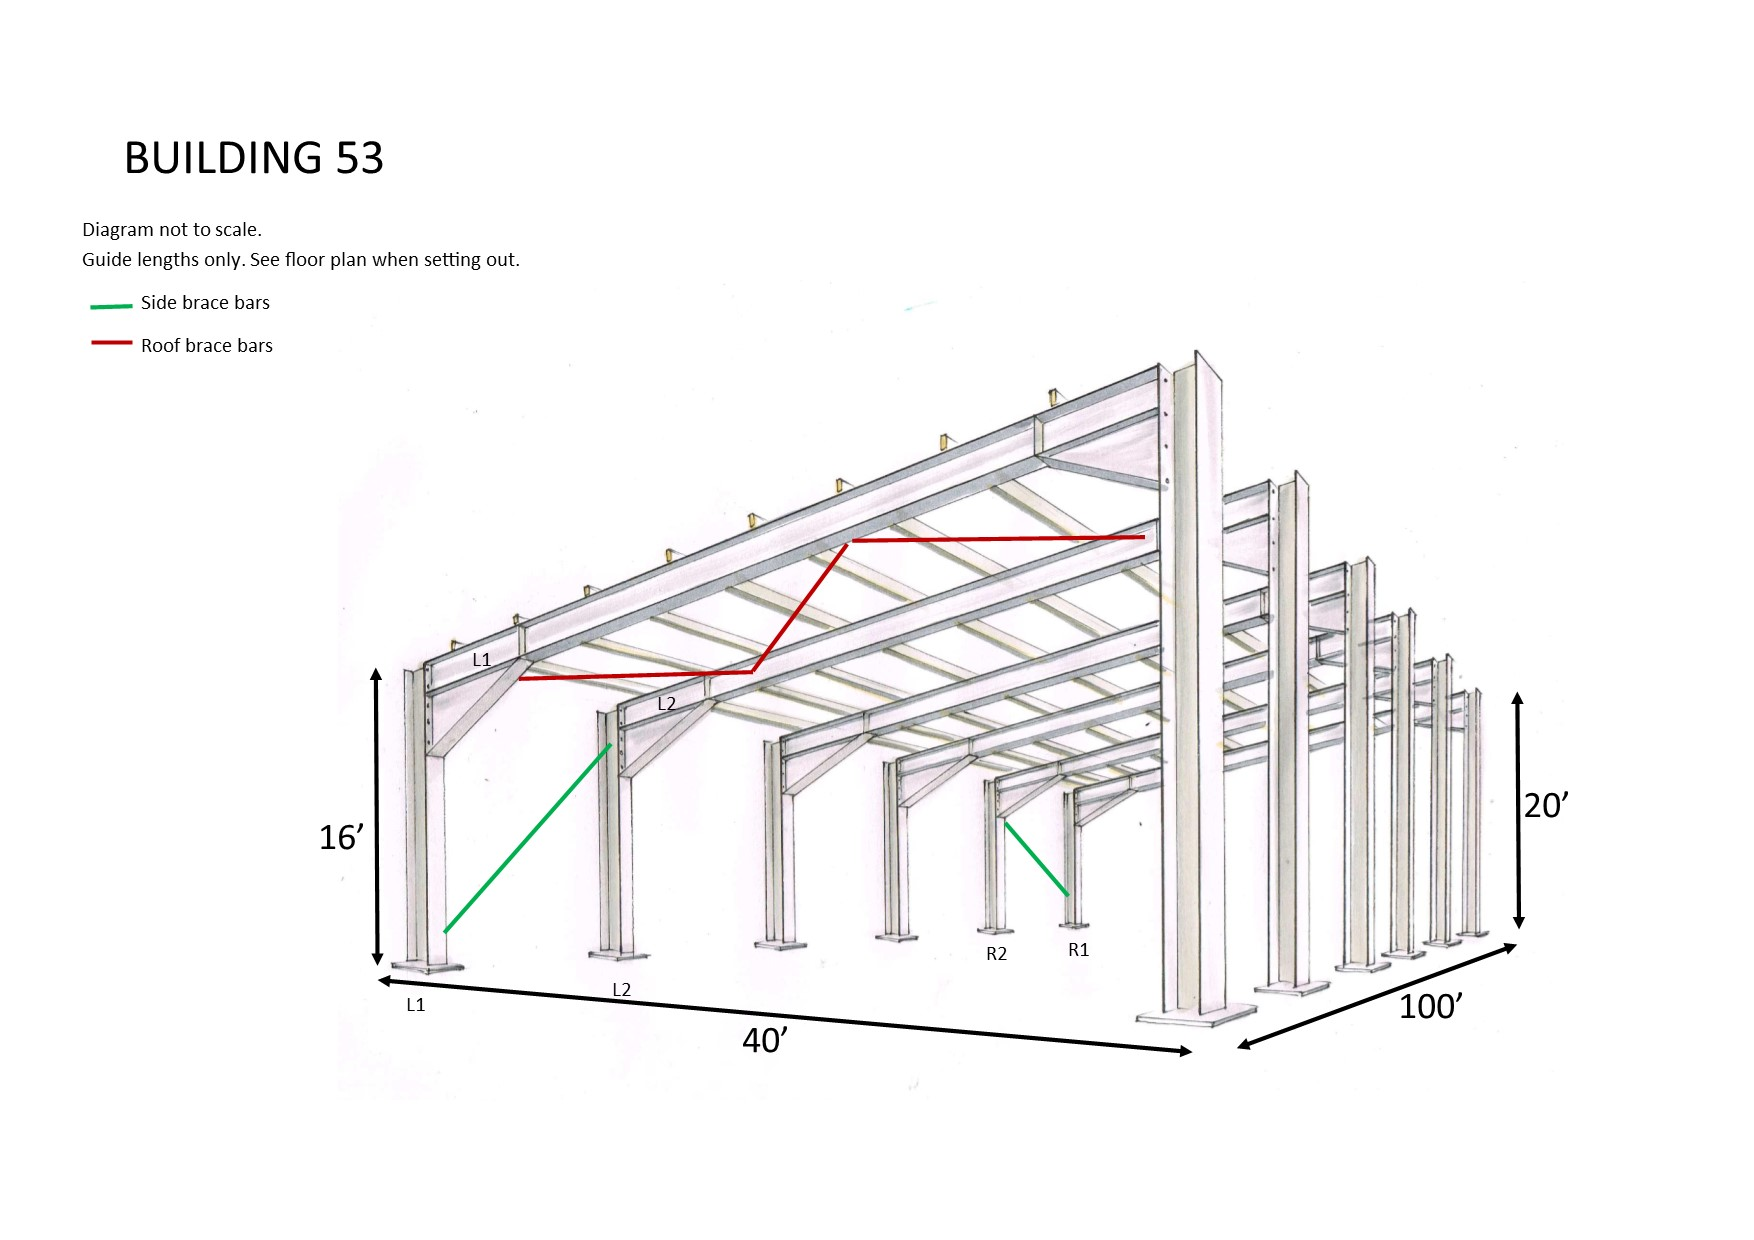 Steel Framed Building Mono Slope 100ft Long X40 Ft Wide X